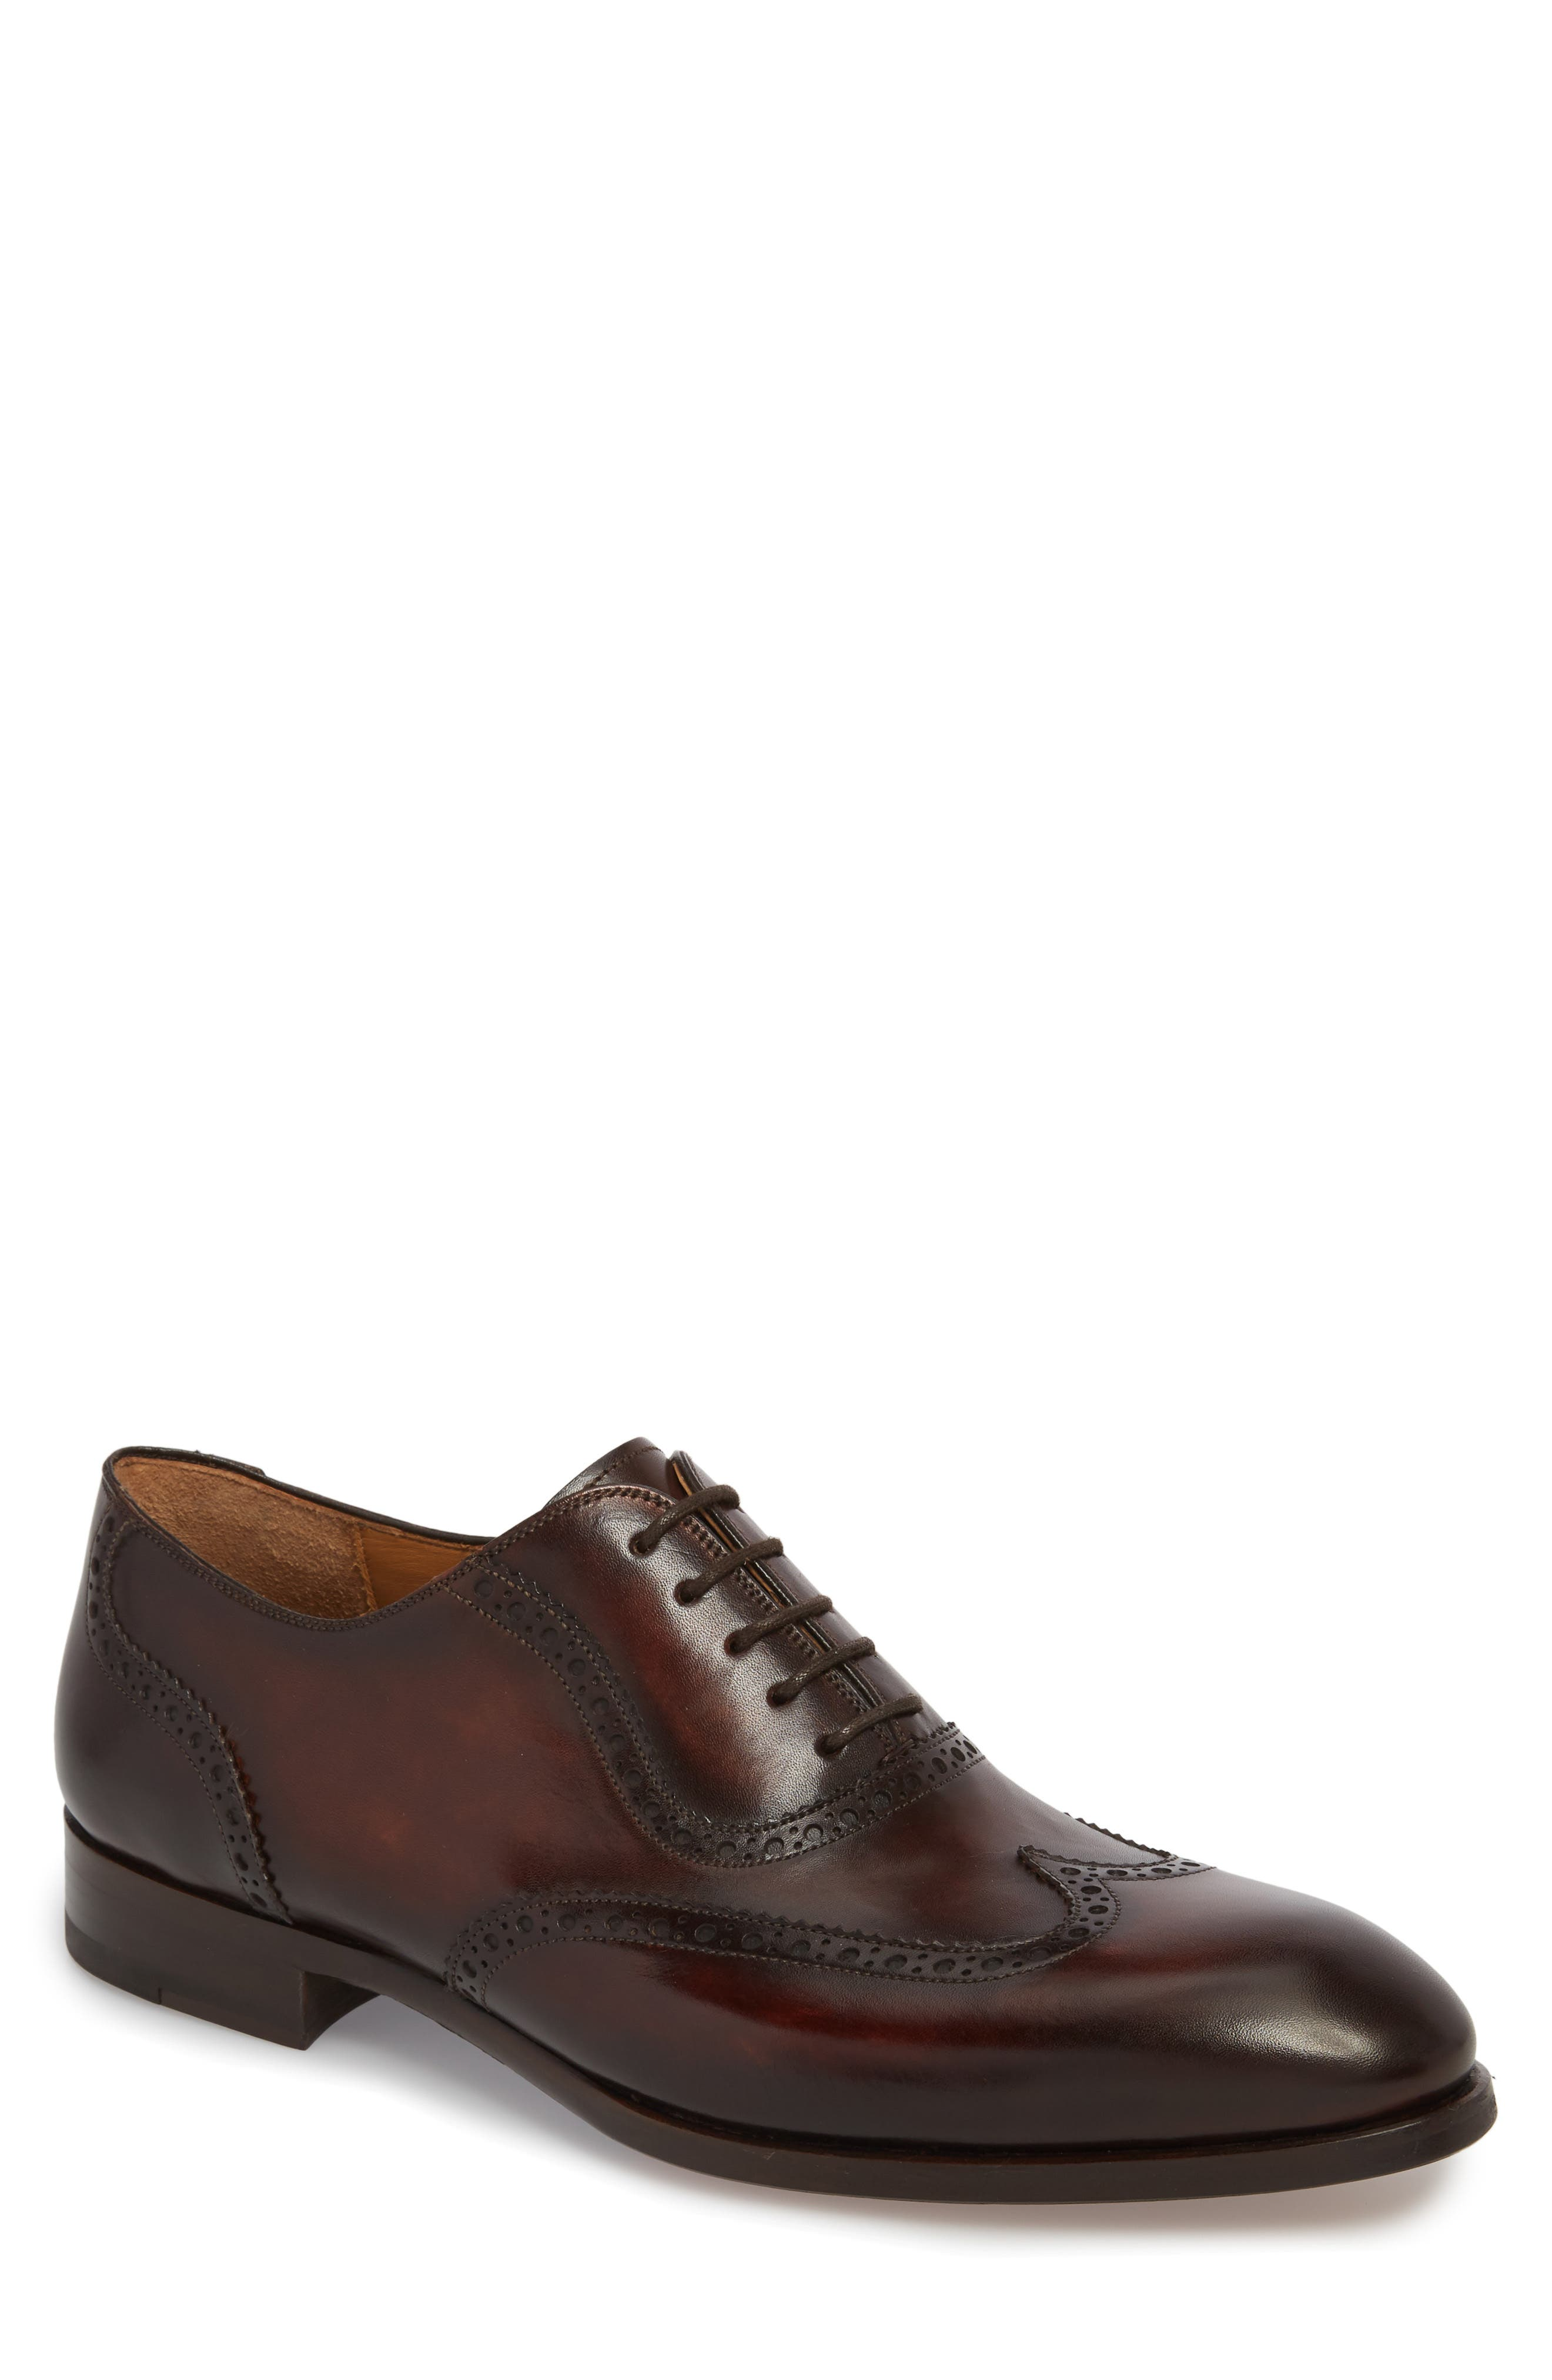 Dana Wingtip Oxford,                         Main,                         color, Mid-Brown Leather